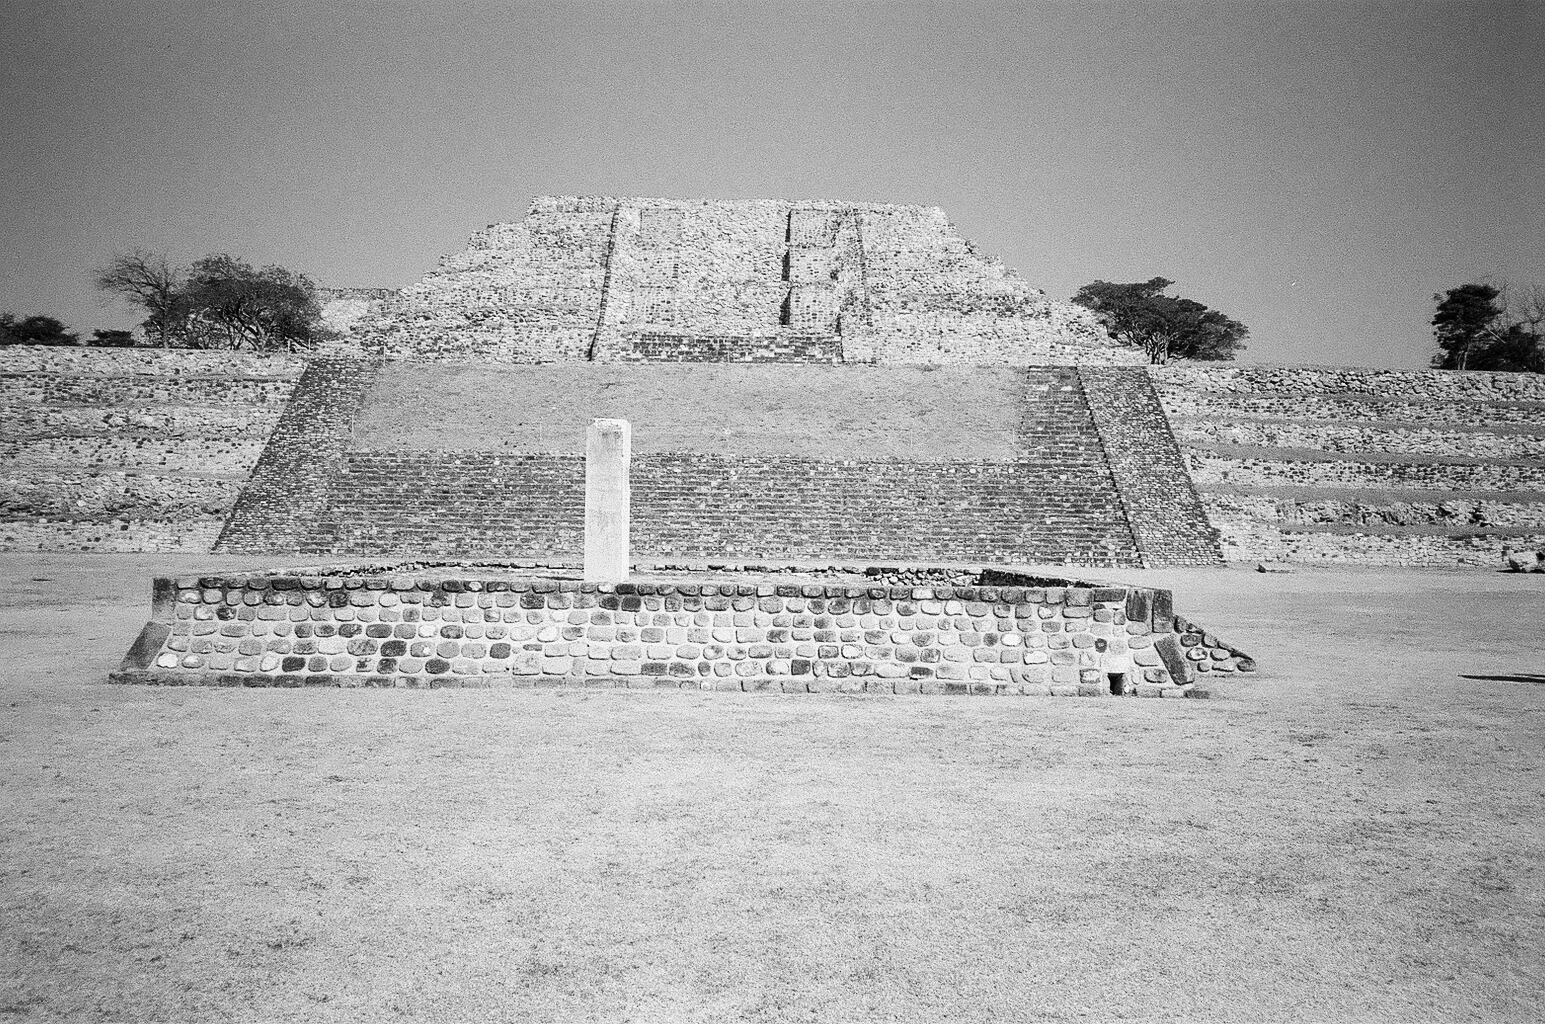 Xochicalco Archeological Site, Morelos, Mexico (January 2017)